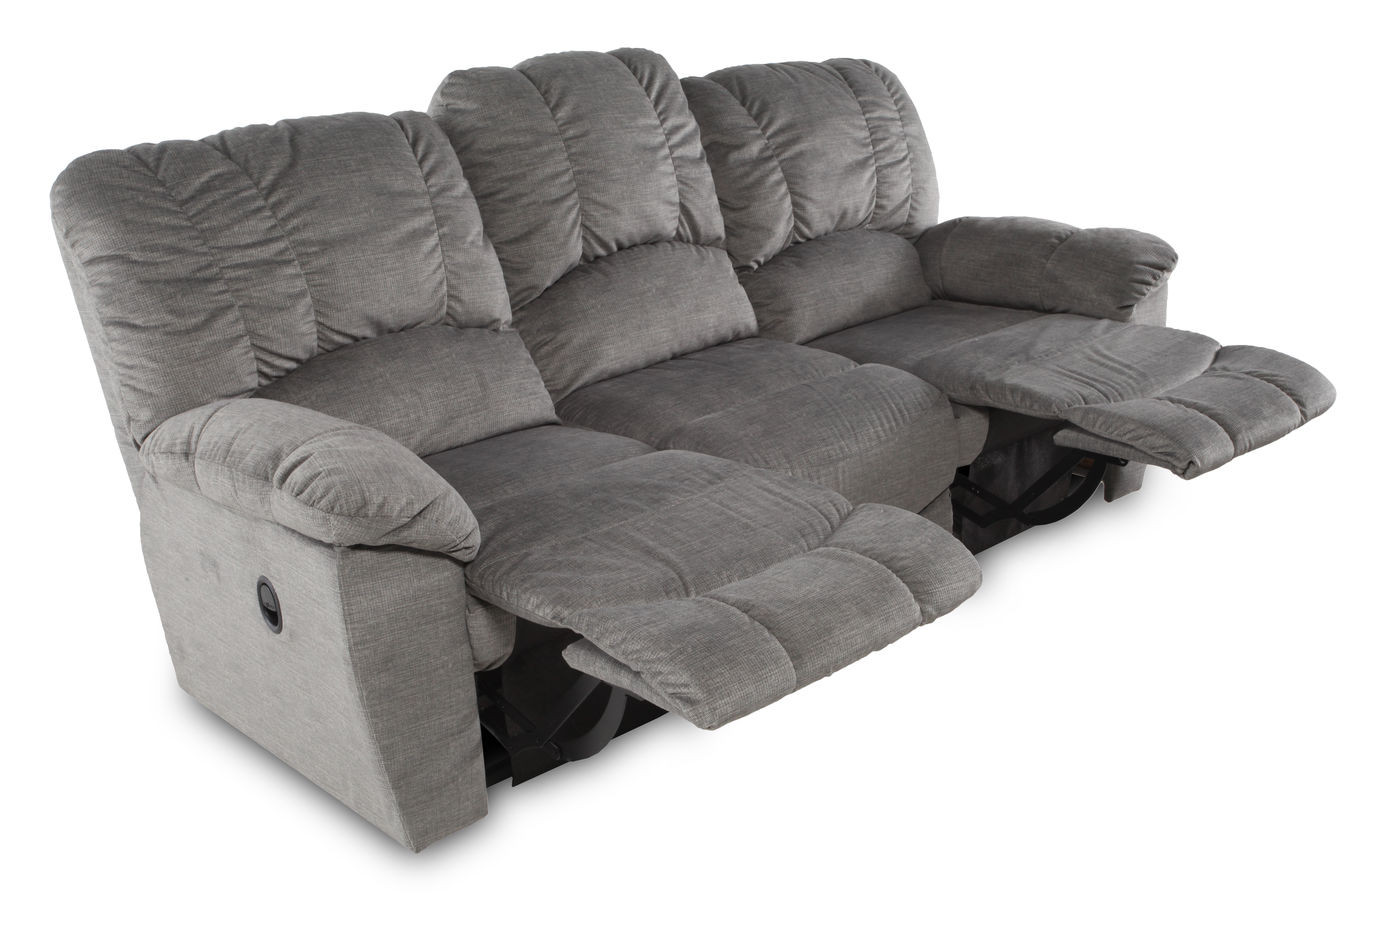 Best ideas about Lazyboy Reclining Sofa . Save or Pin Lazy Boy Dual Reclining Sofa Contemporary 87 Double Now.